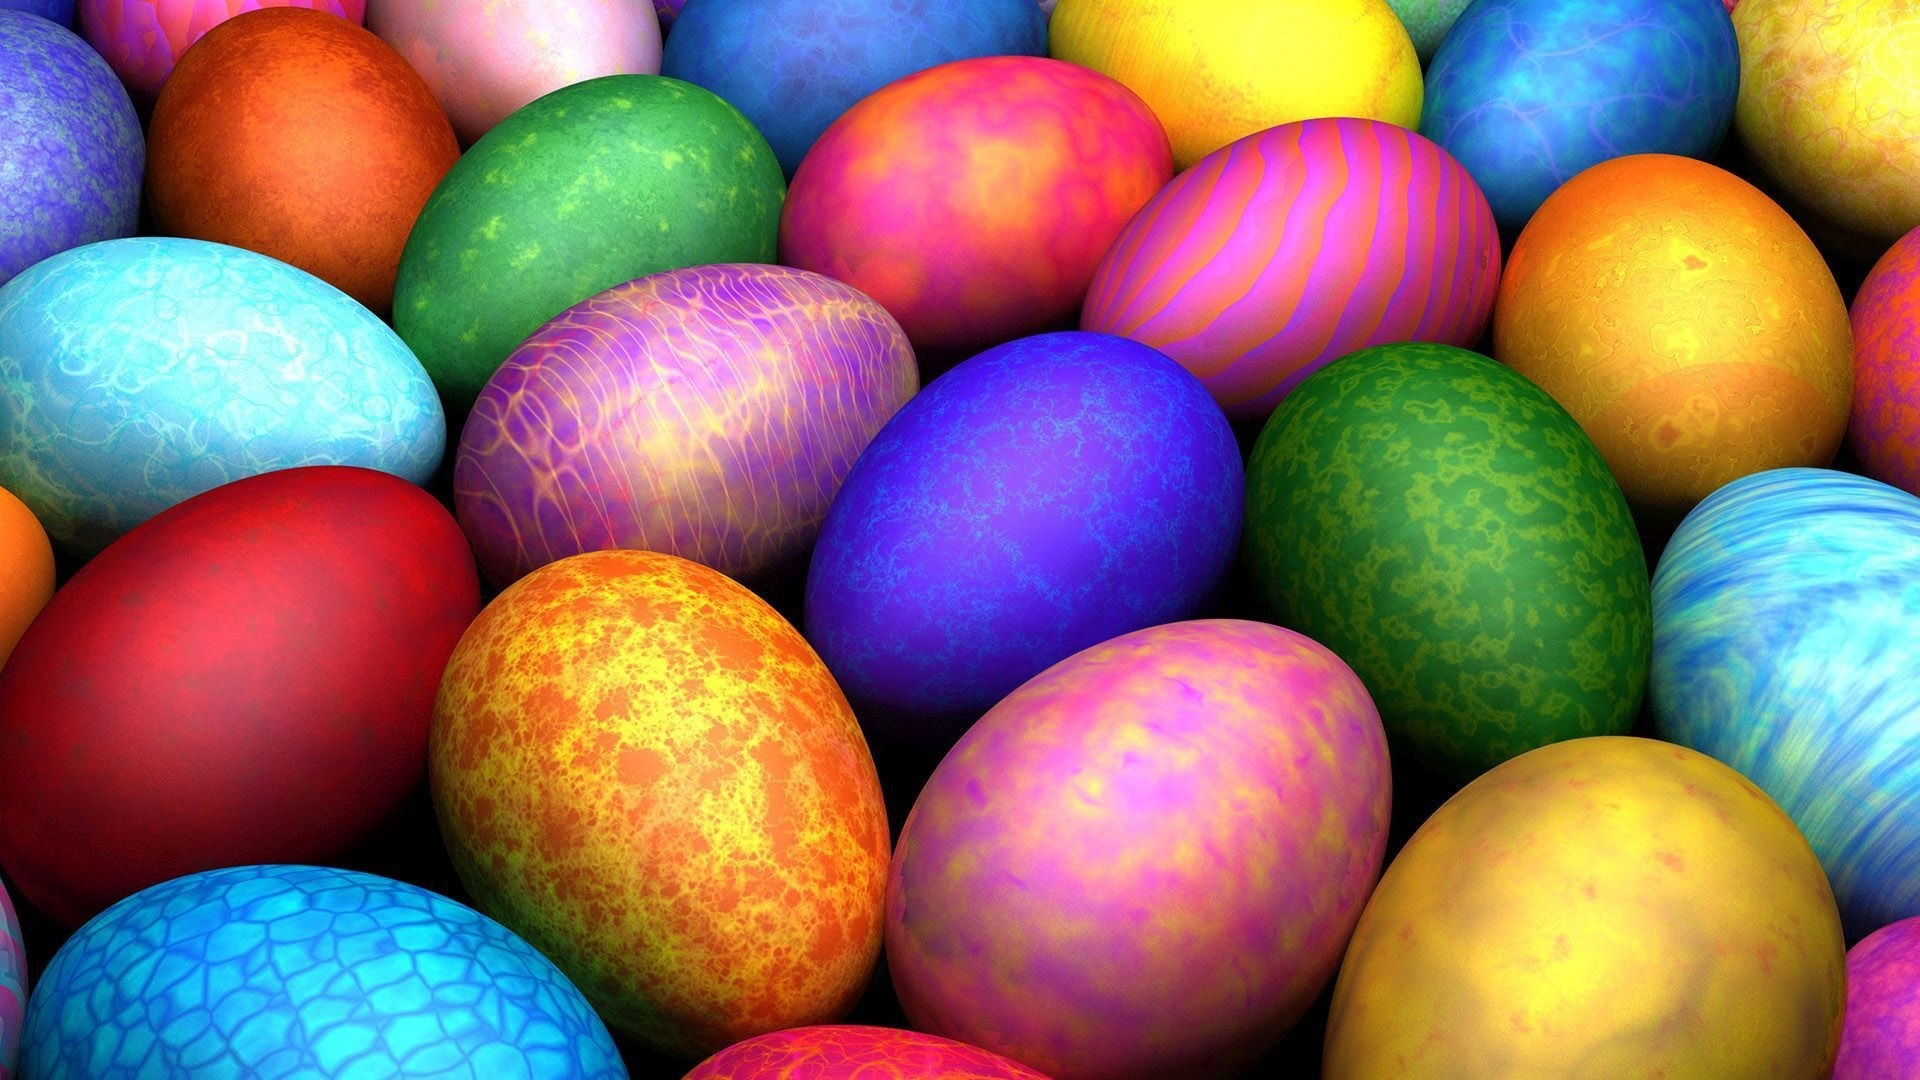 Easter 2020 Wallpaper Download